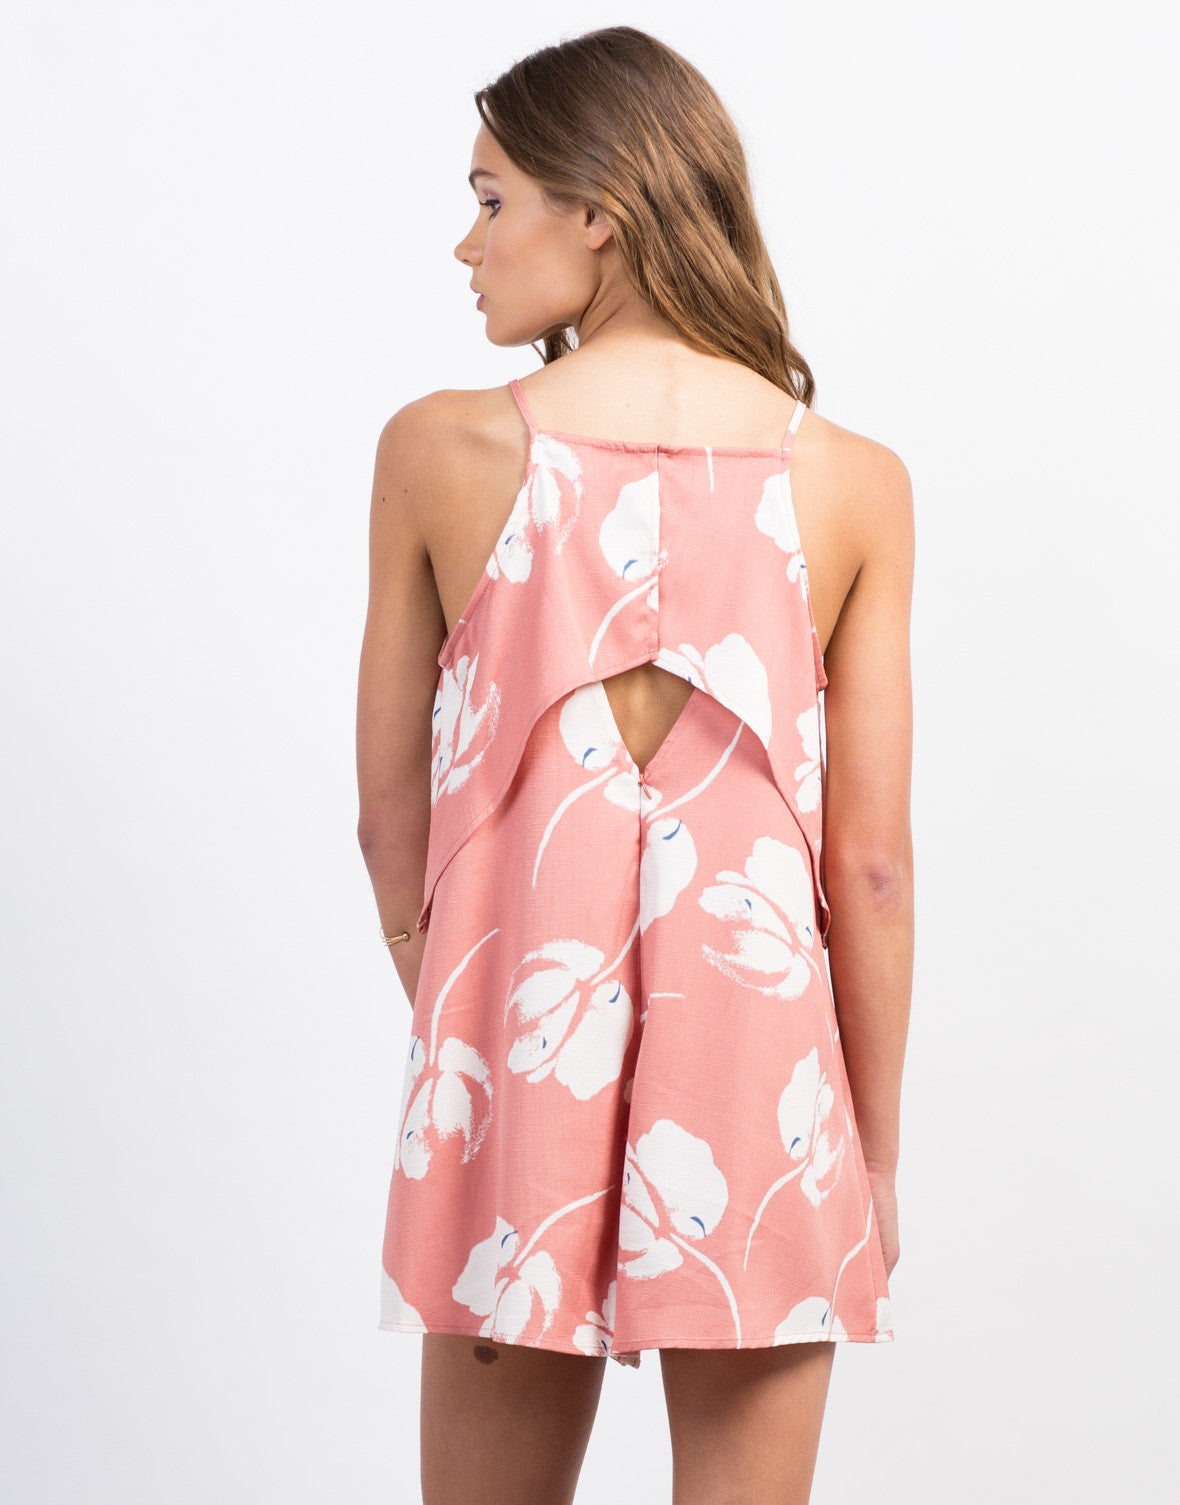 Back View of Tiered Woven Print Romper